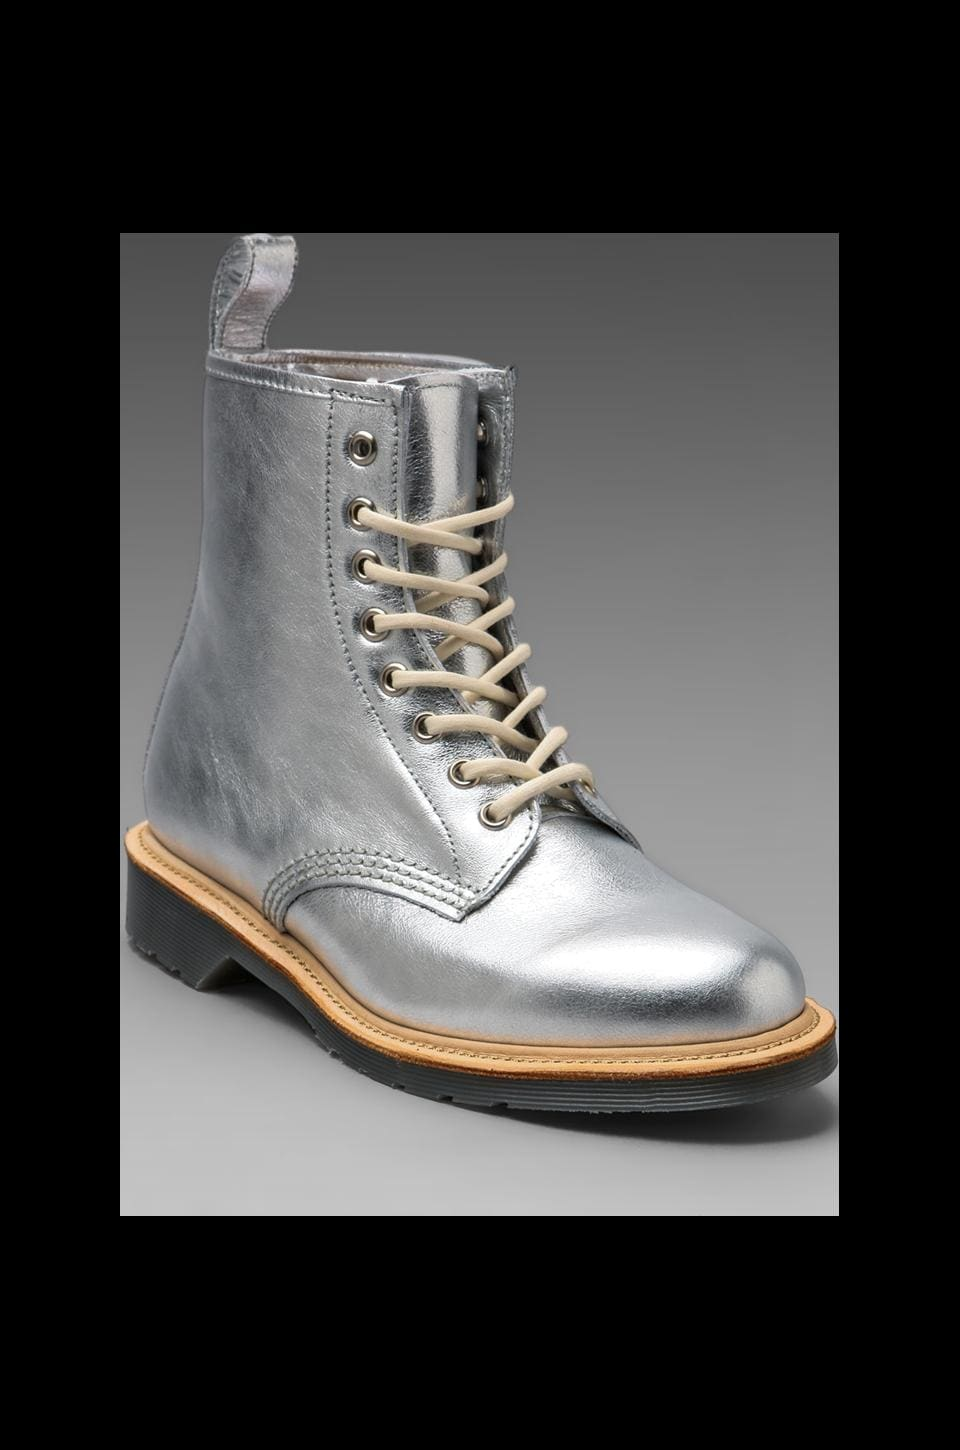 Dr. Martens 8-Eye Boot in Sliver